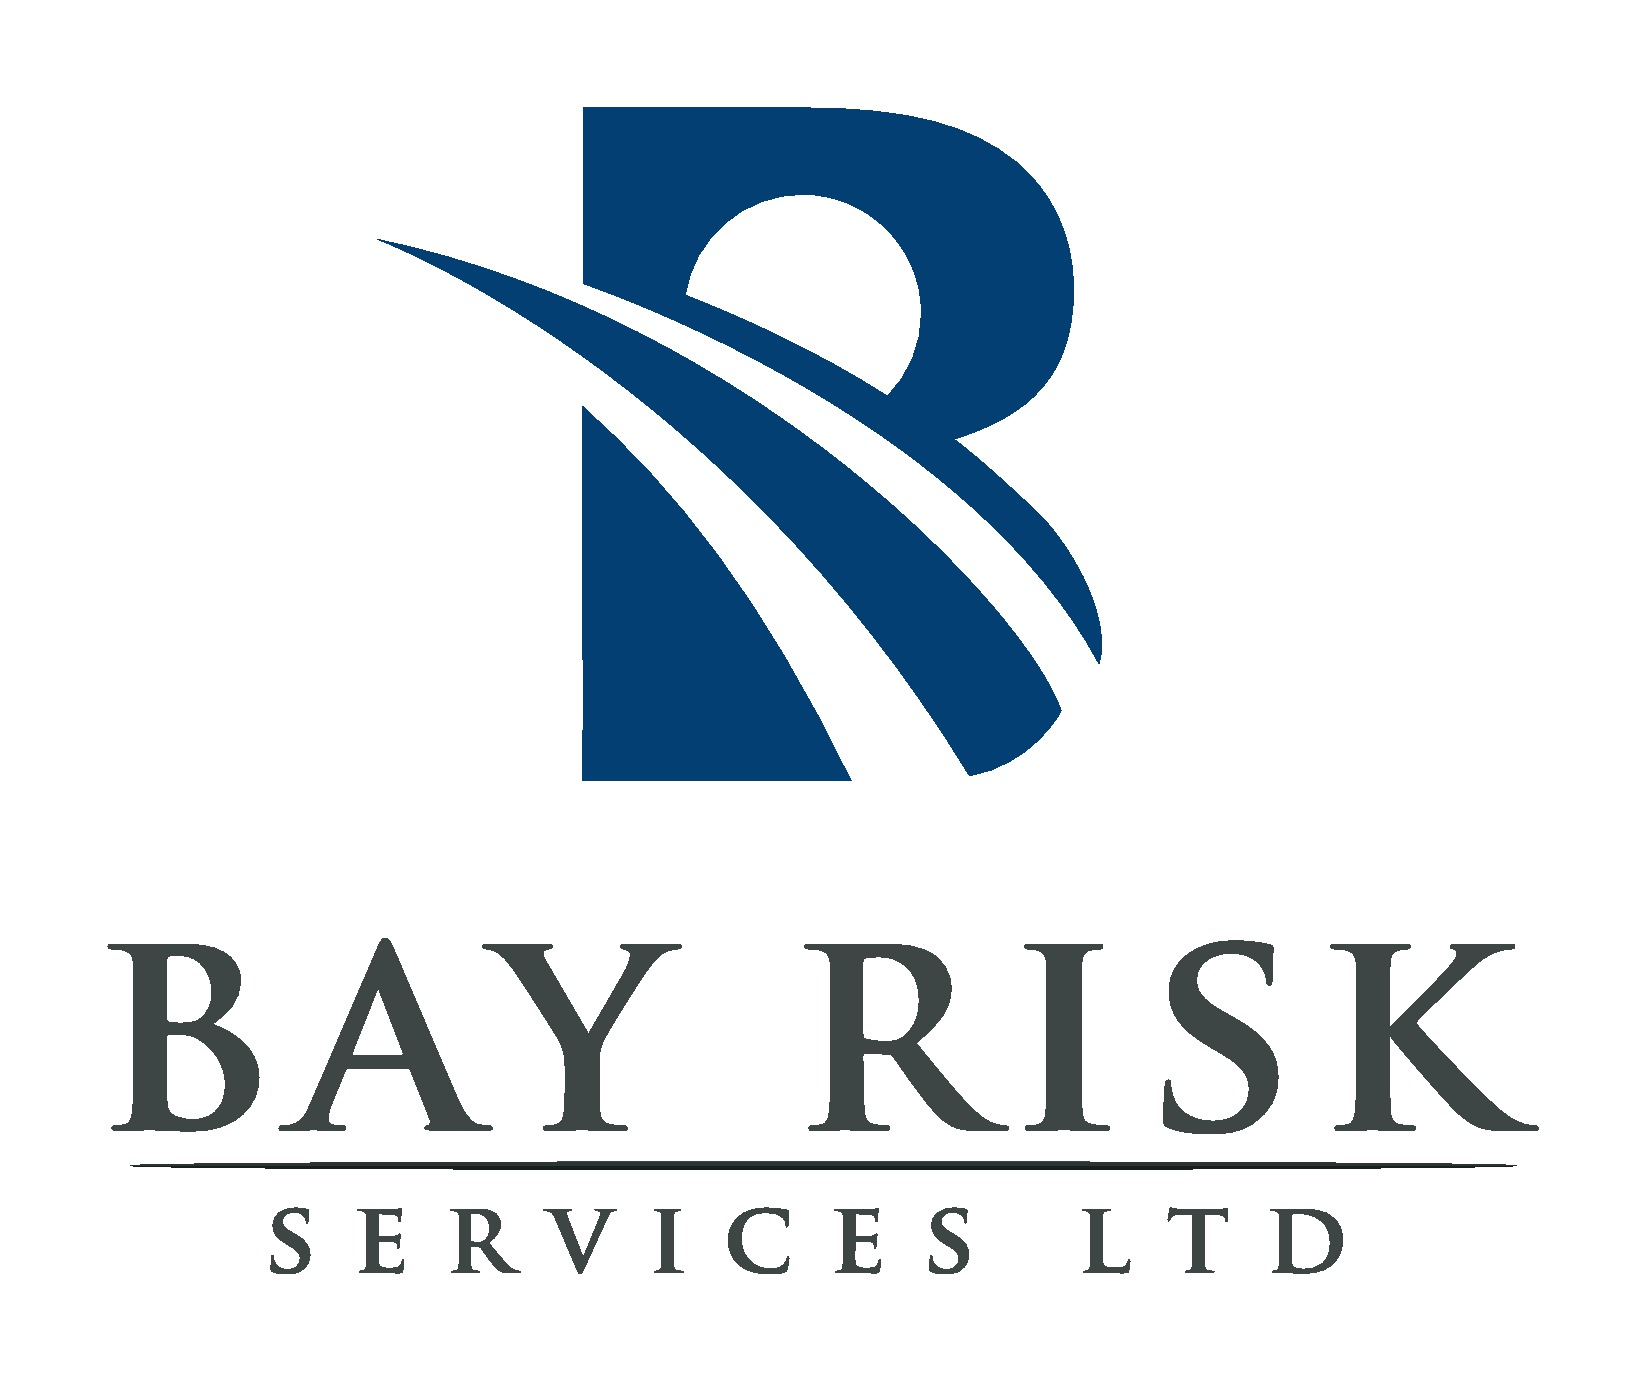 Bay Risk Services